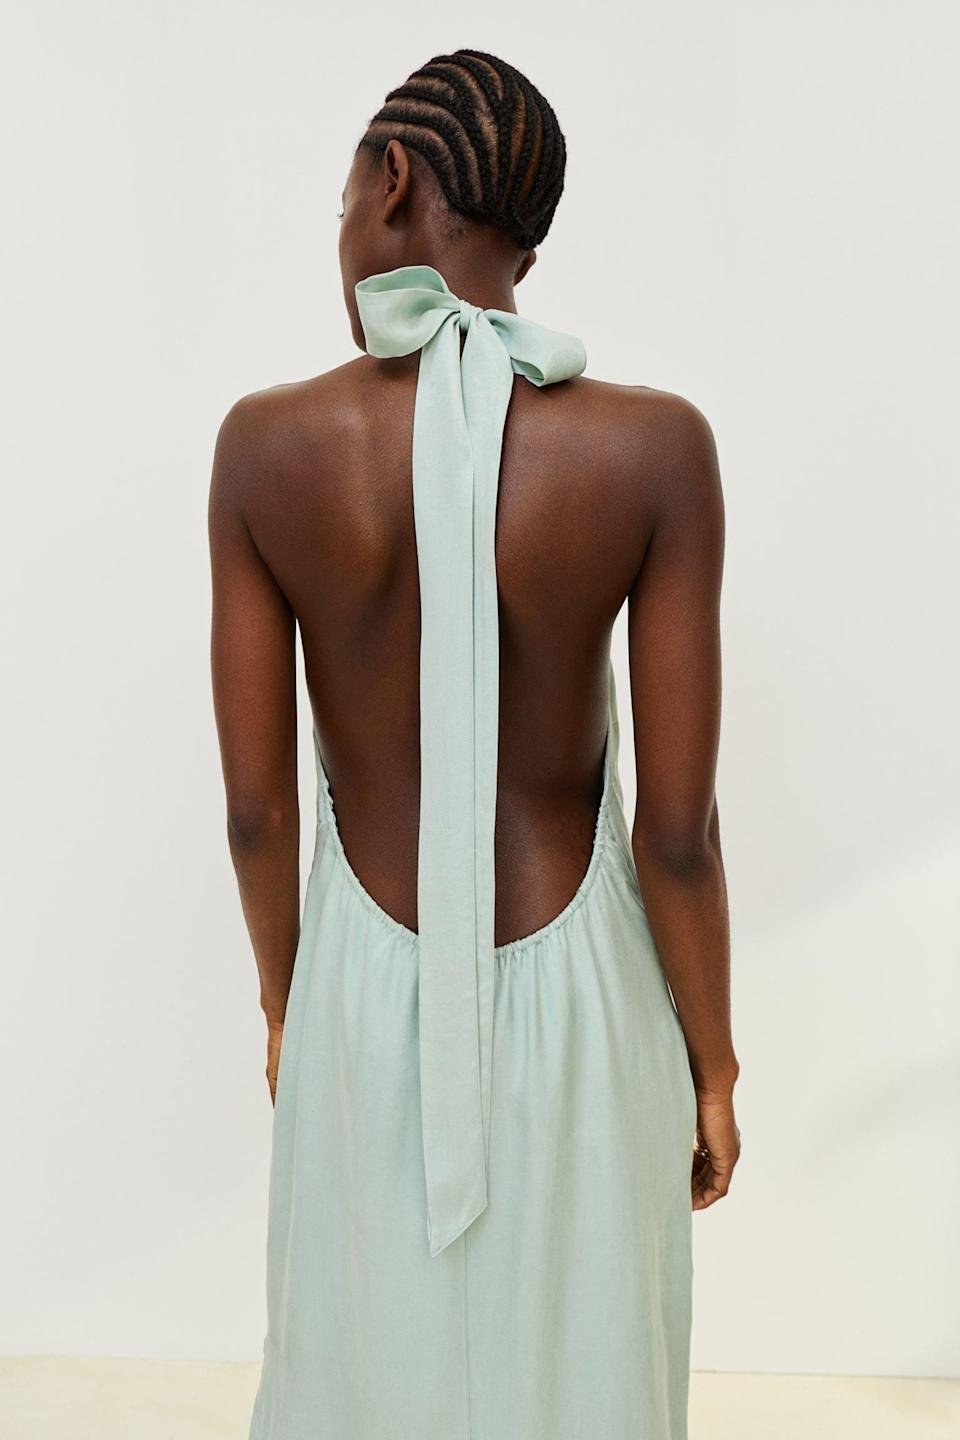 <p>This <span>Halterneck Dress</span> ($36, originally $40) will absolutely stun everyone at the next party. We're sold on the back alone.</p>